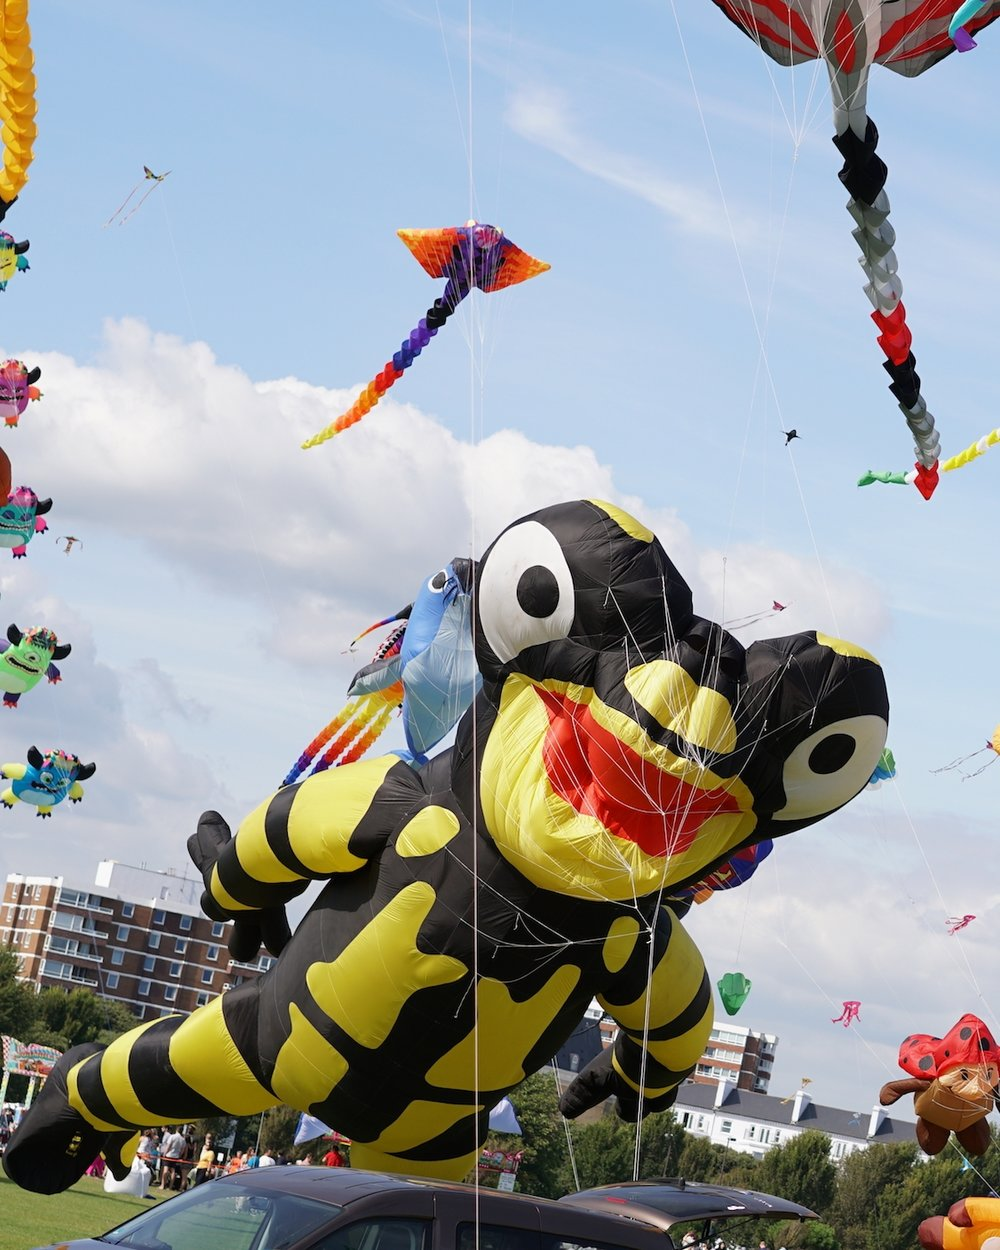 Portsmouth International Kite Festival 2018